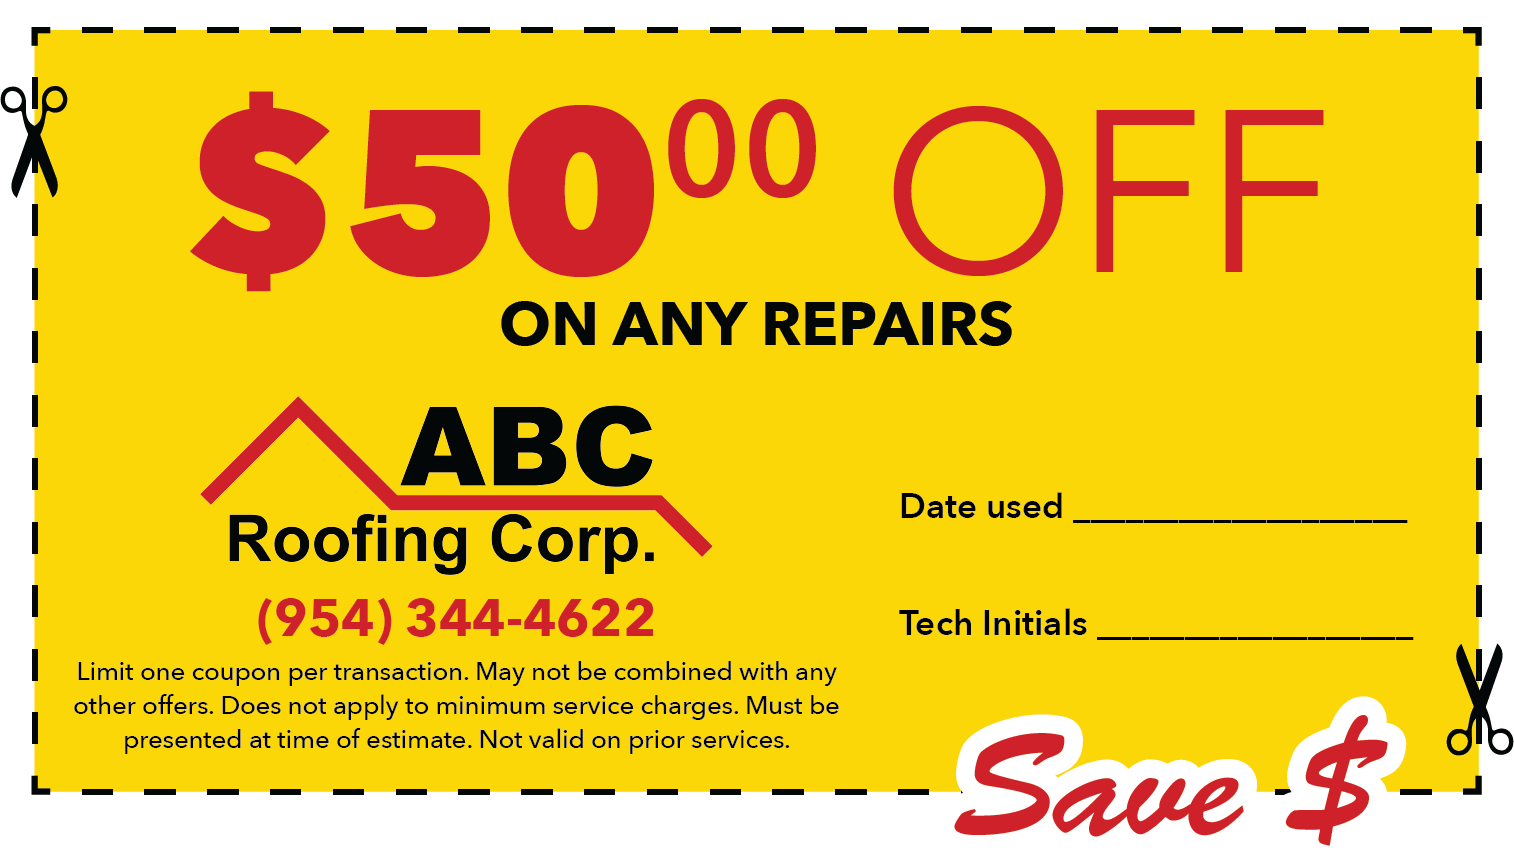 $50 off any repairs